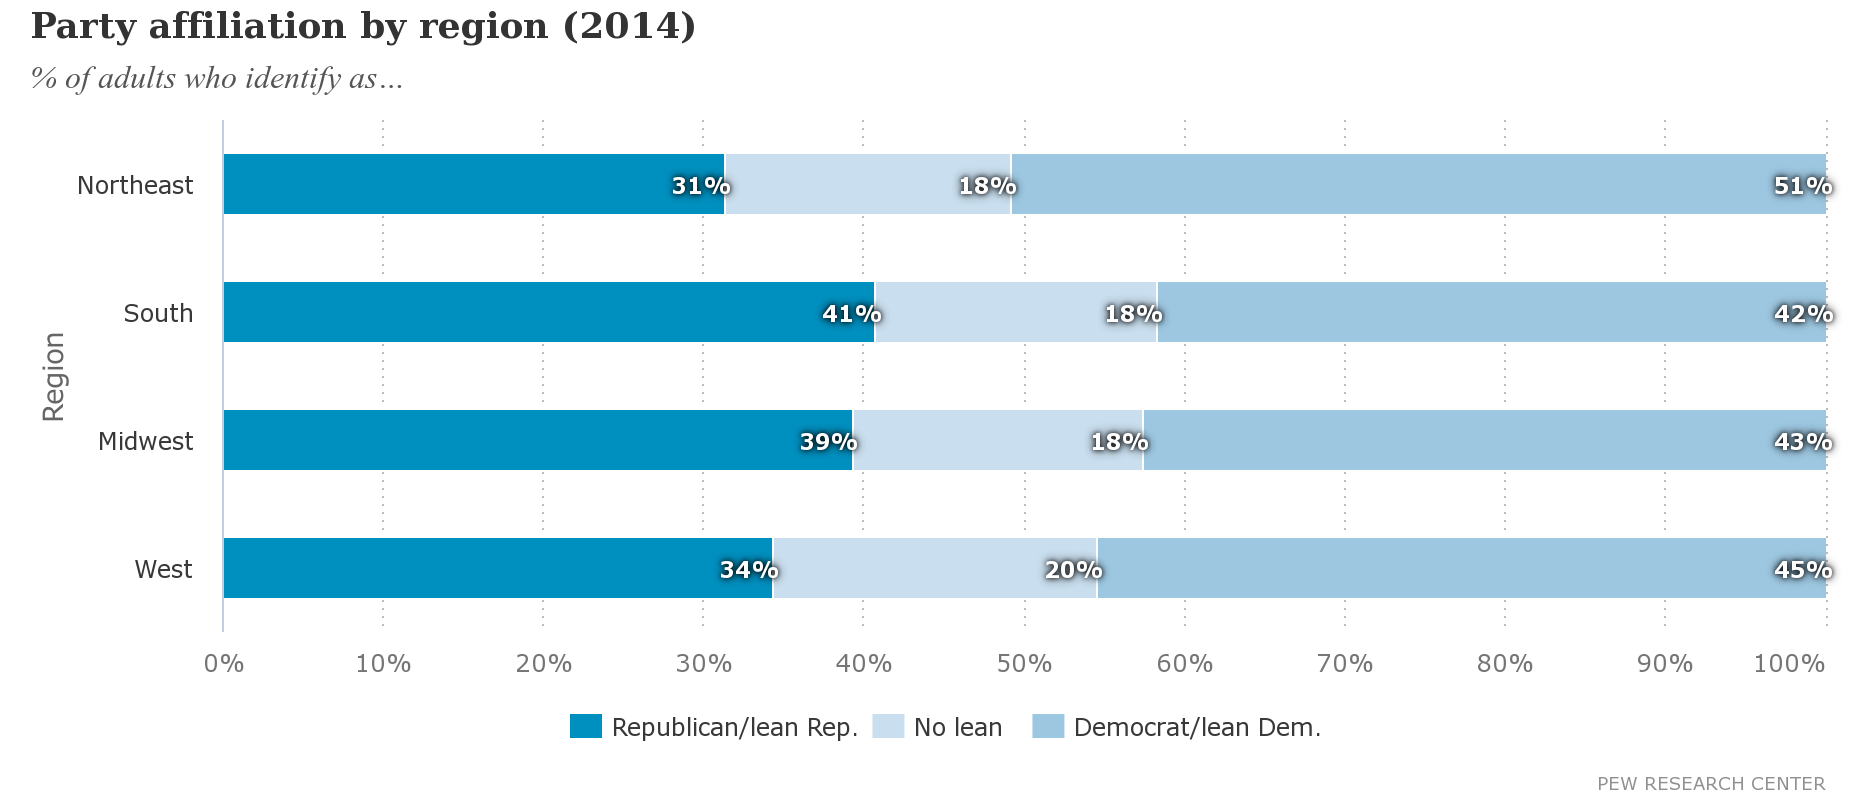 Pew Research Center showing US party affiliation by region (2014)